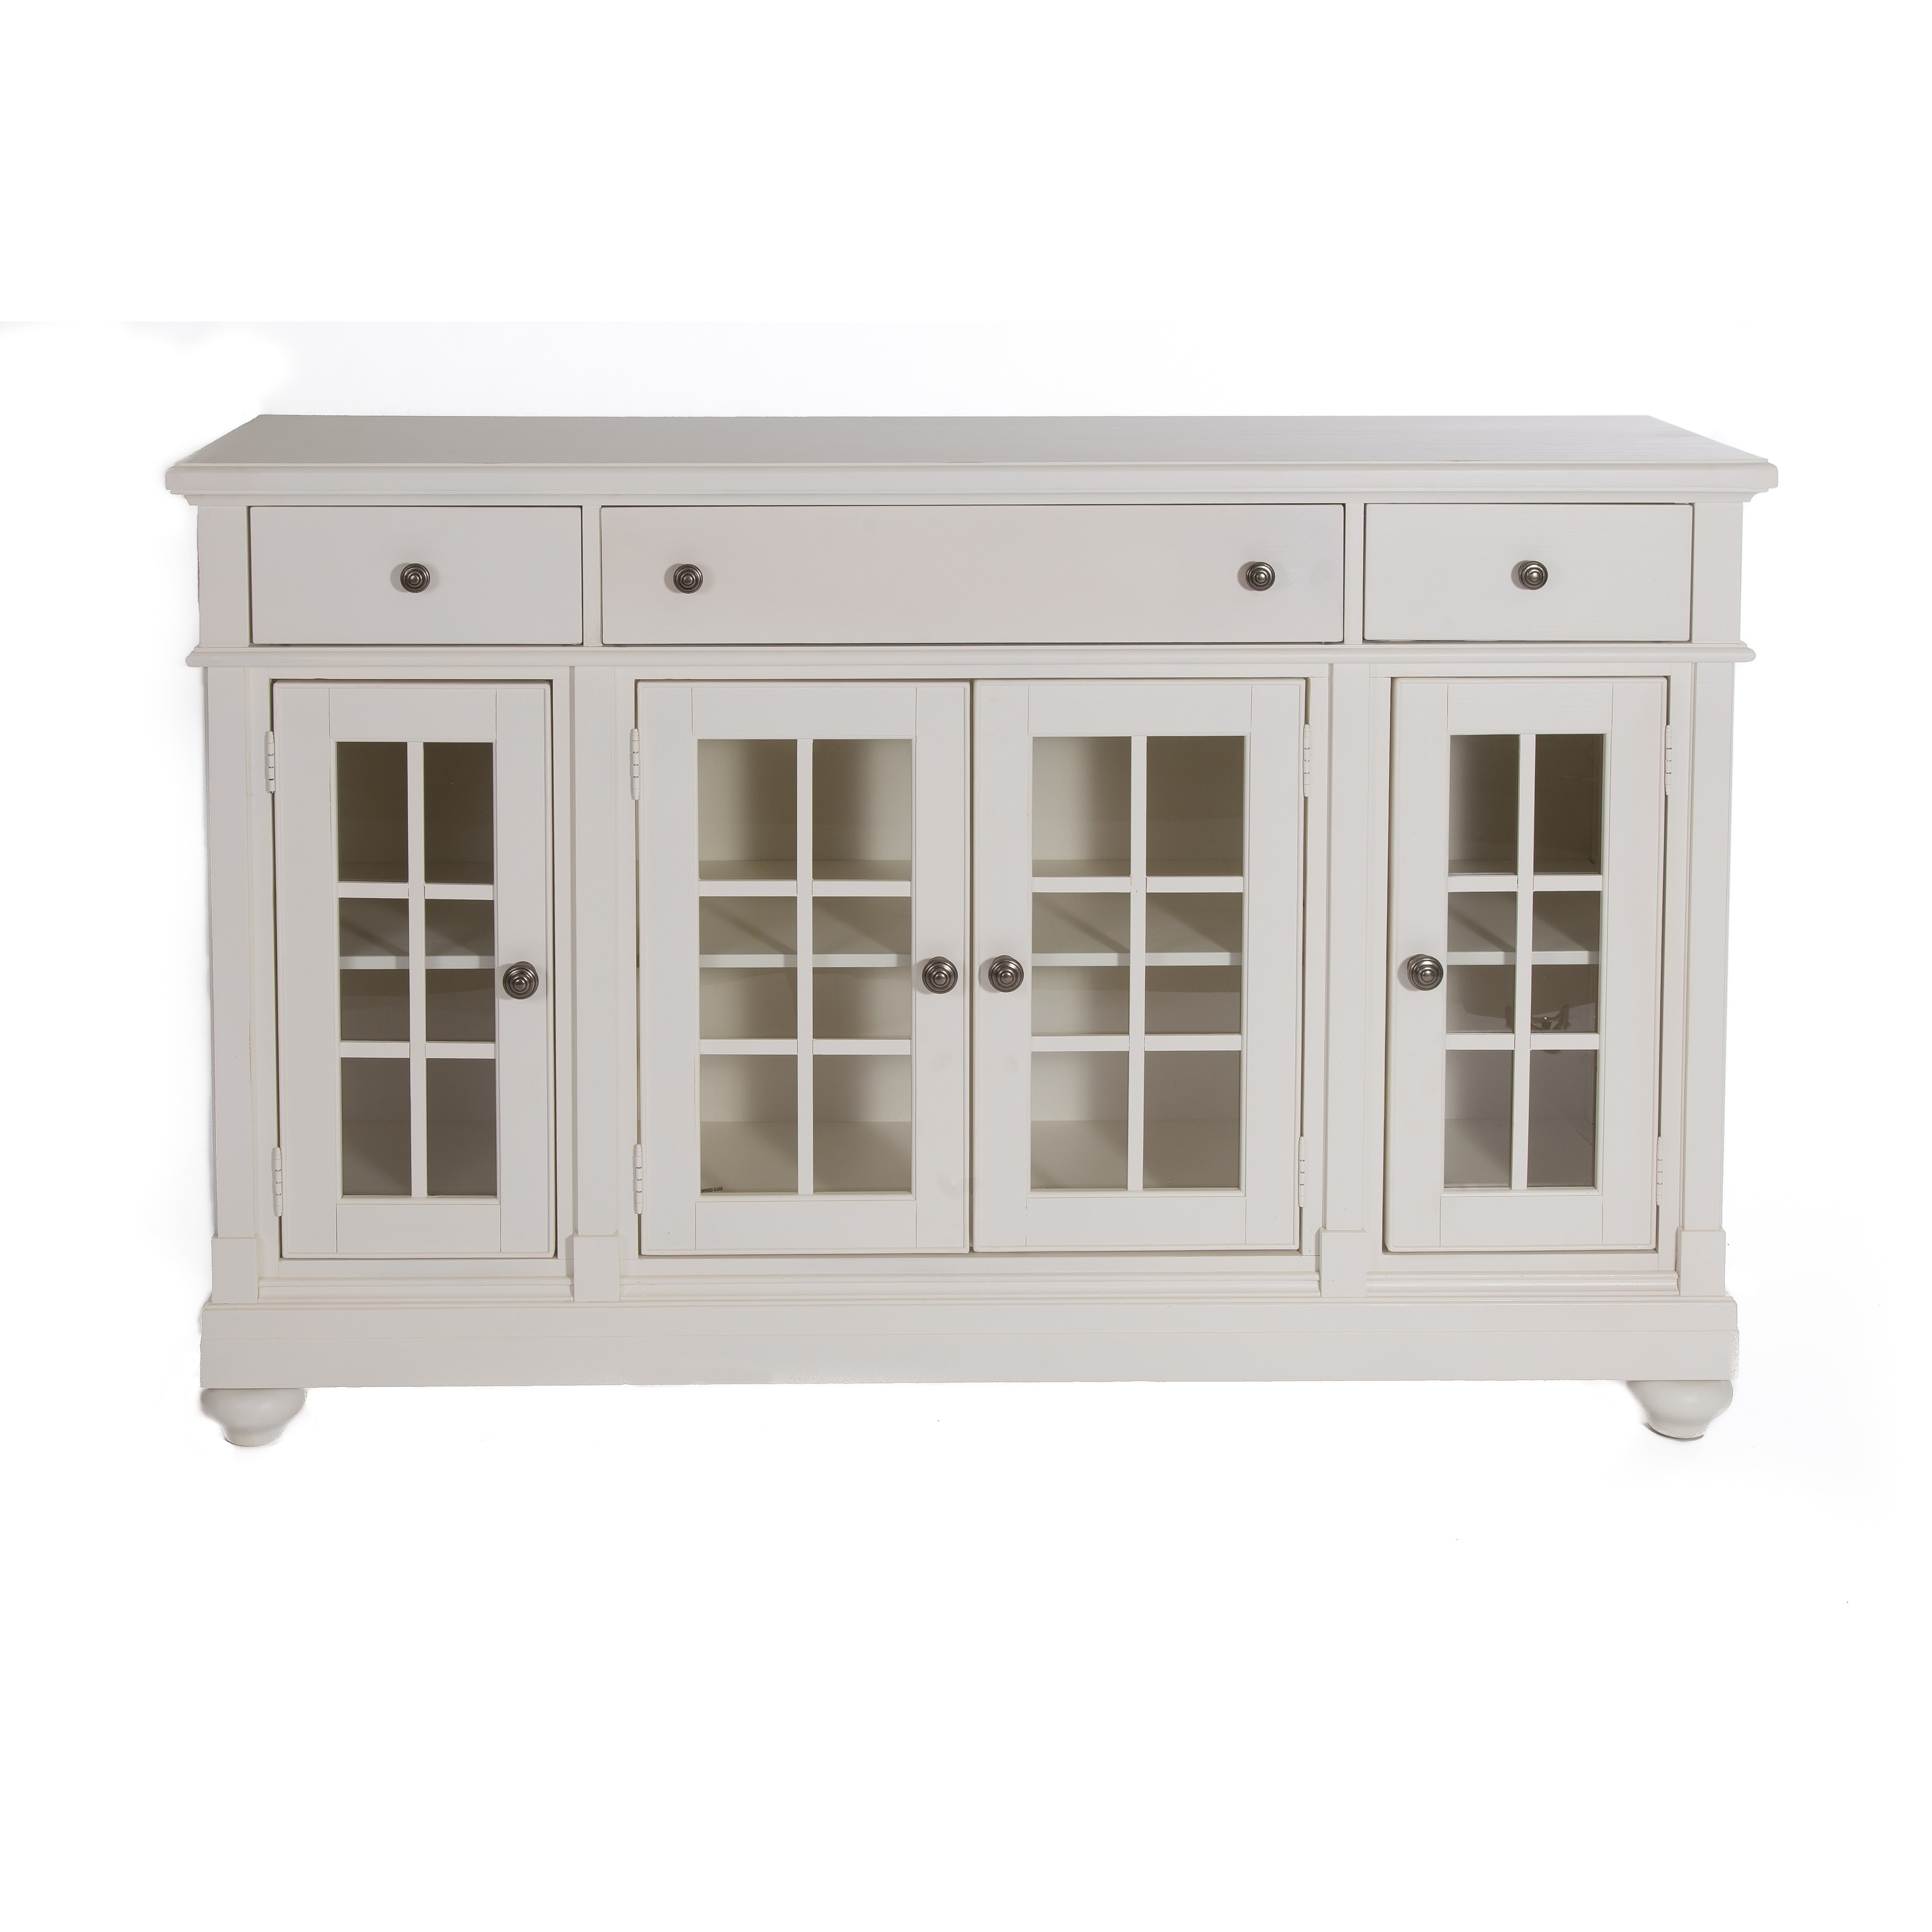 cottage harbor white buffet free shipping today overstockcom 17712117 - White Buffet